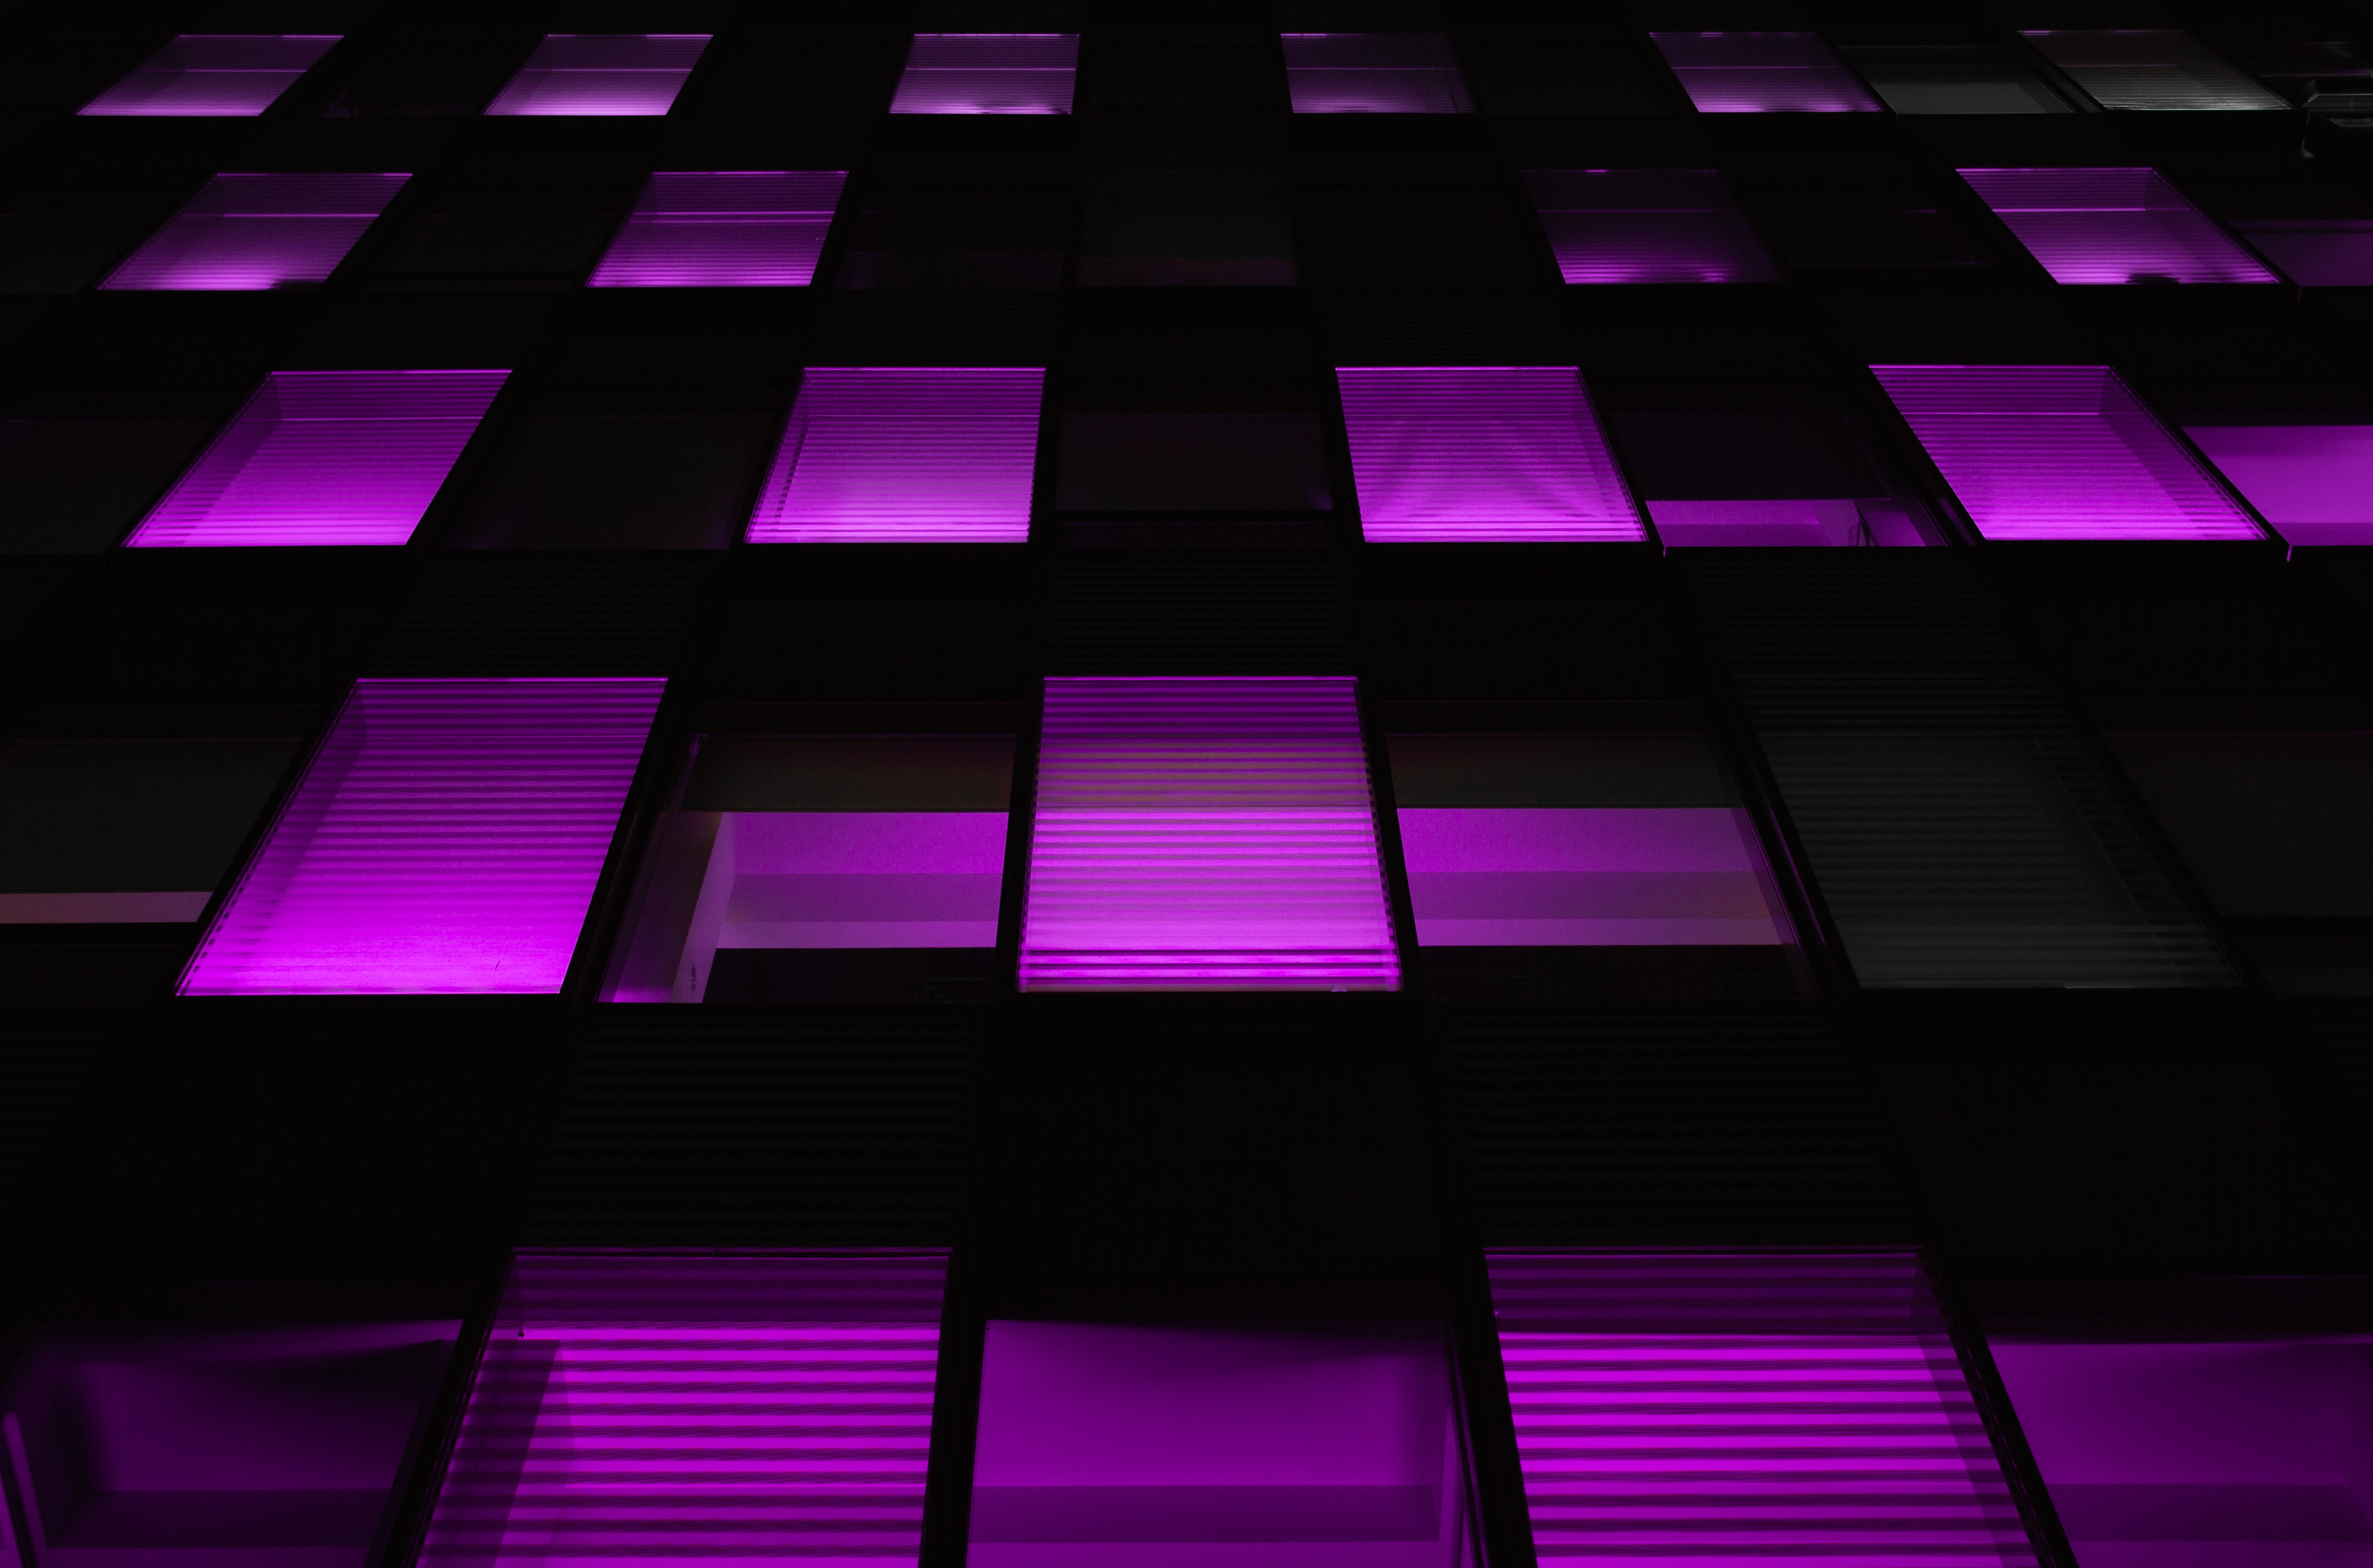 59176 Screensavers and Wallpapers Windows for phone. Download Violet, Windows, Dark, Neon, Backlight, Illumination, Purple pictures for free